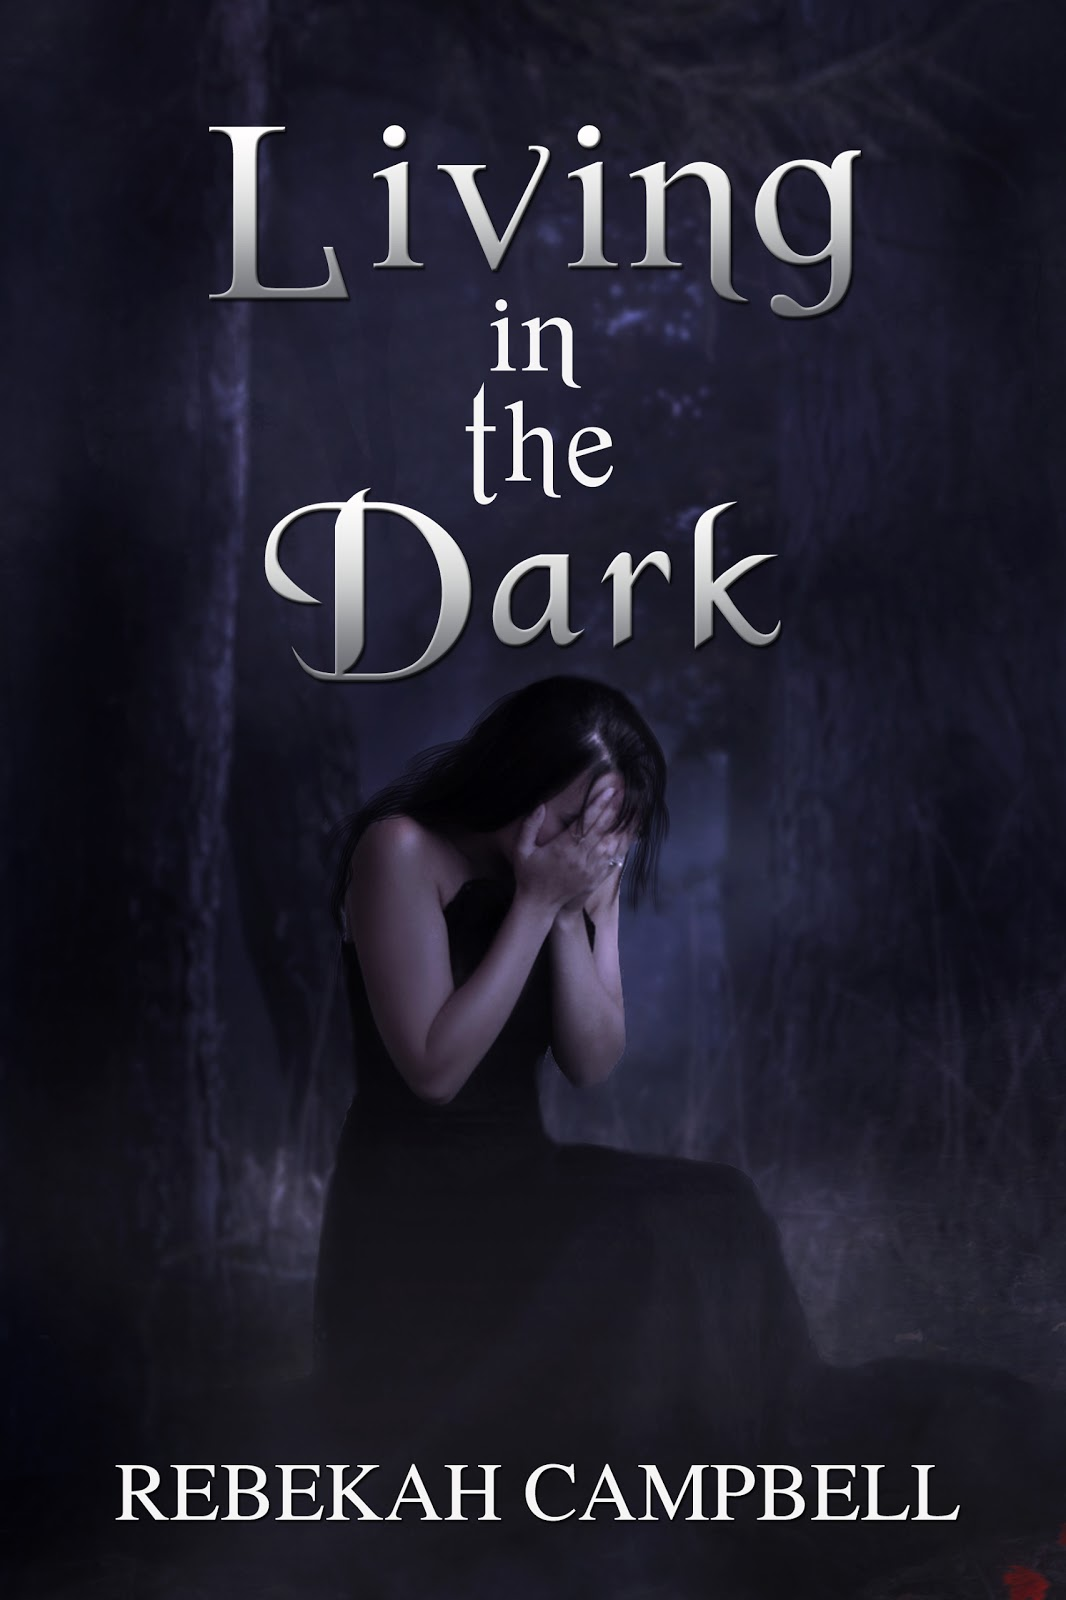 Living in the Dark by Rebekah Campbell